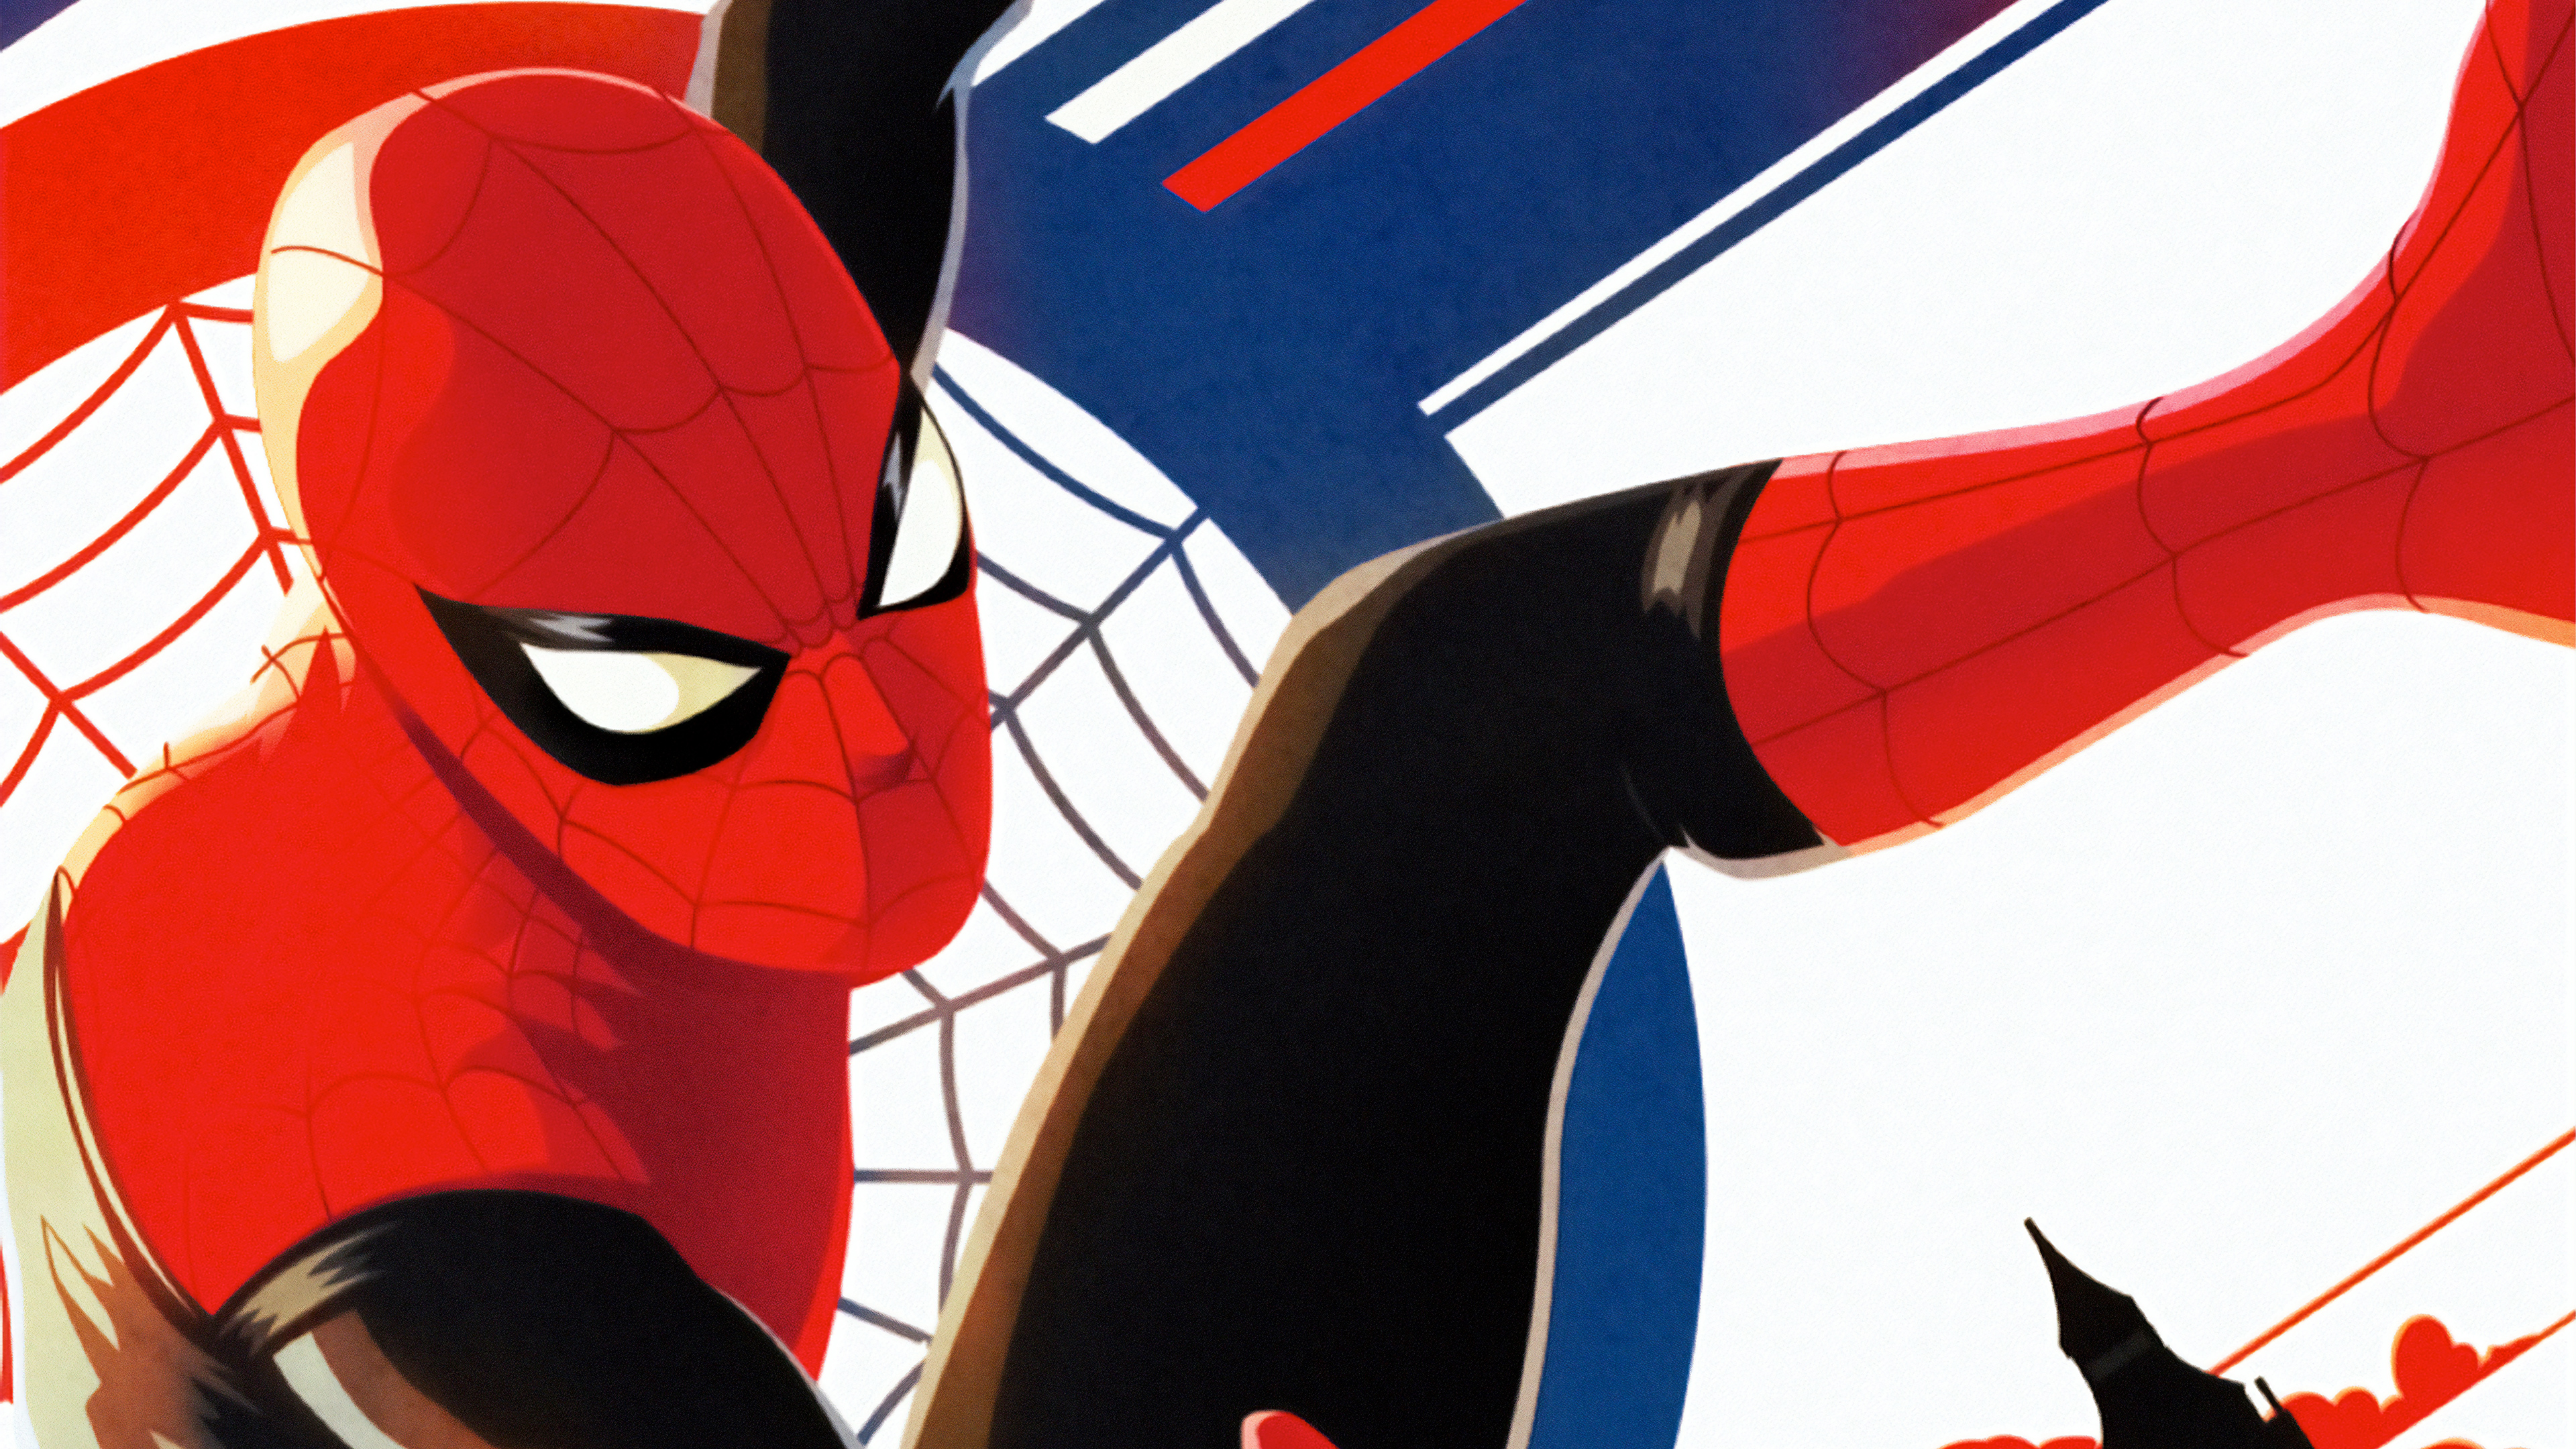 spiderman far from home movie poster 1563220794 - Spiderman Far From Home Movie Poster - superheroes wallpapers, spiderman wallpapers, spiderman far from home wallpapers, hd-wallpapers, 4k-wallpapers